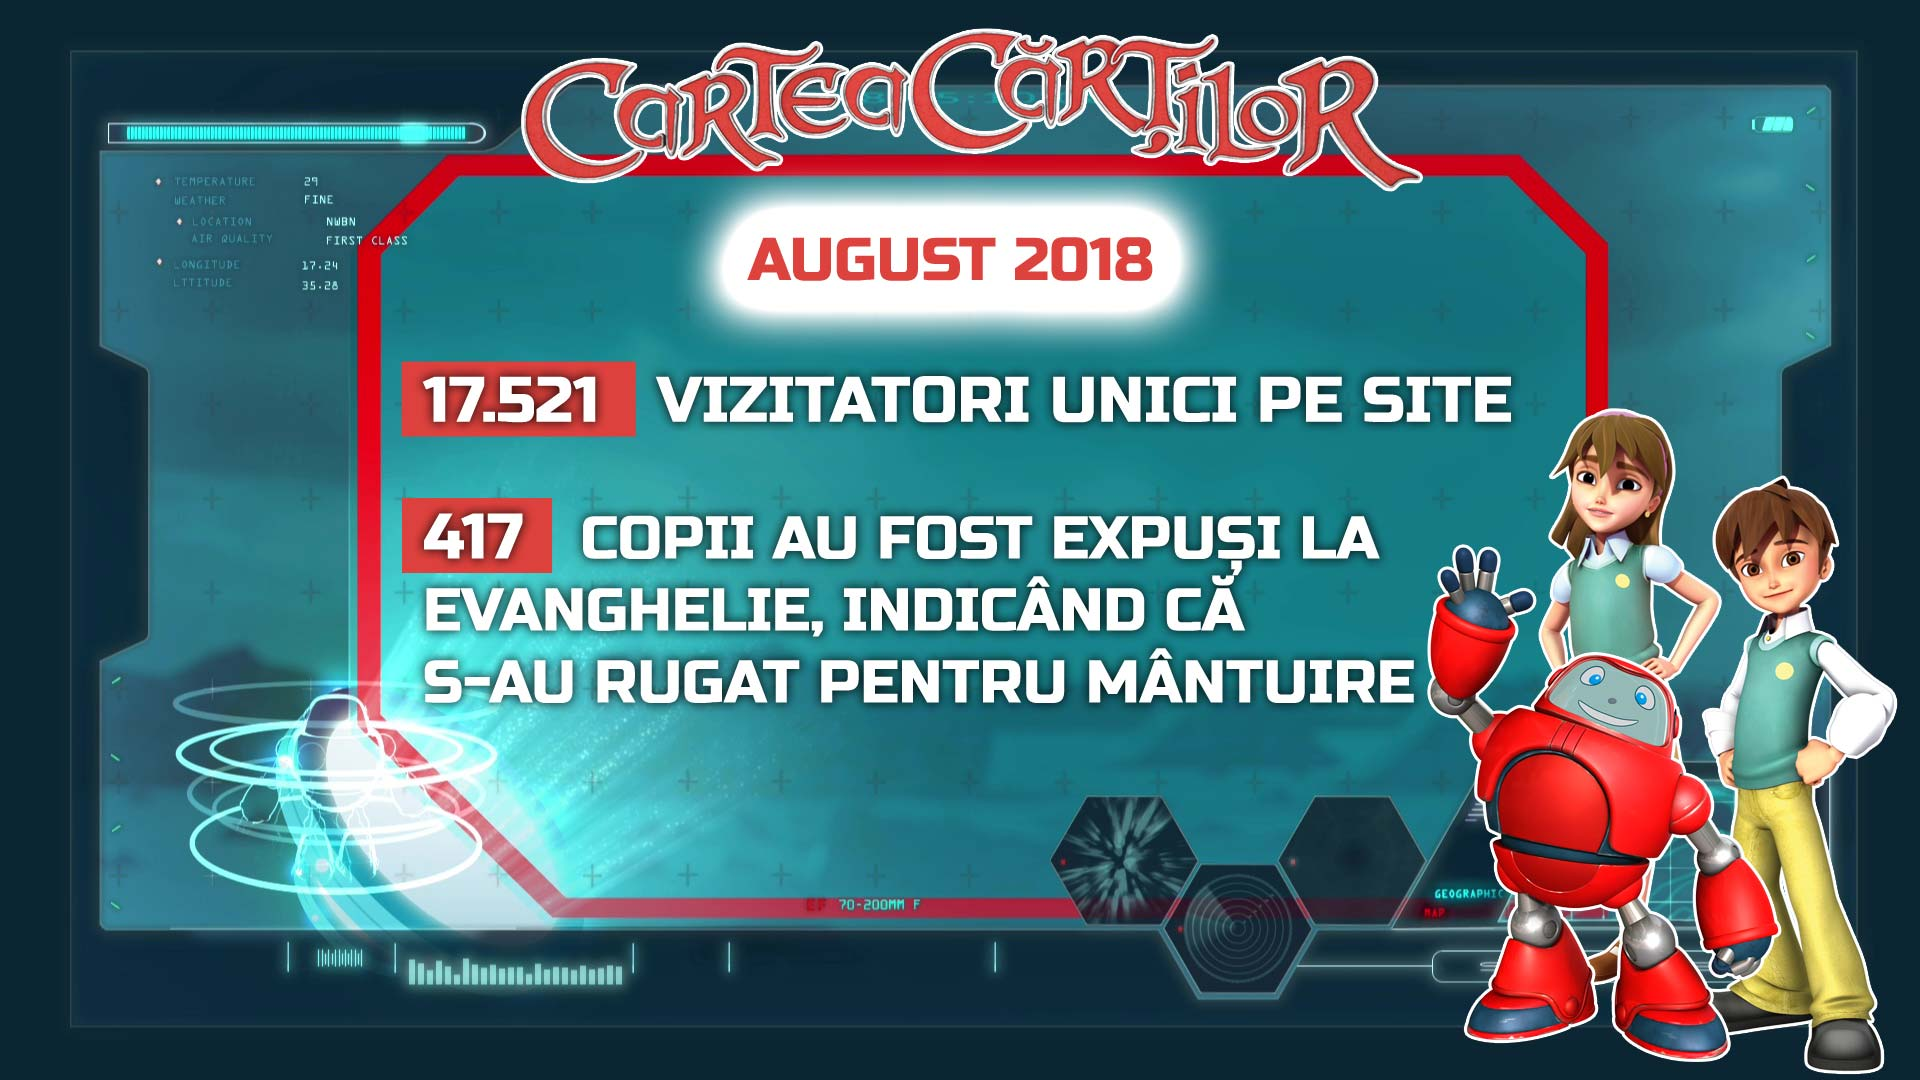 Site-ul CarteaCartilor.tv - activitatea din luna august 2018